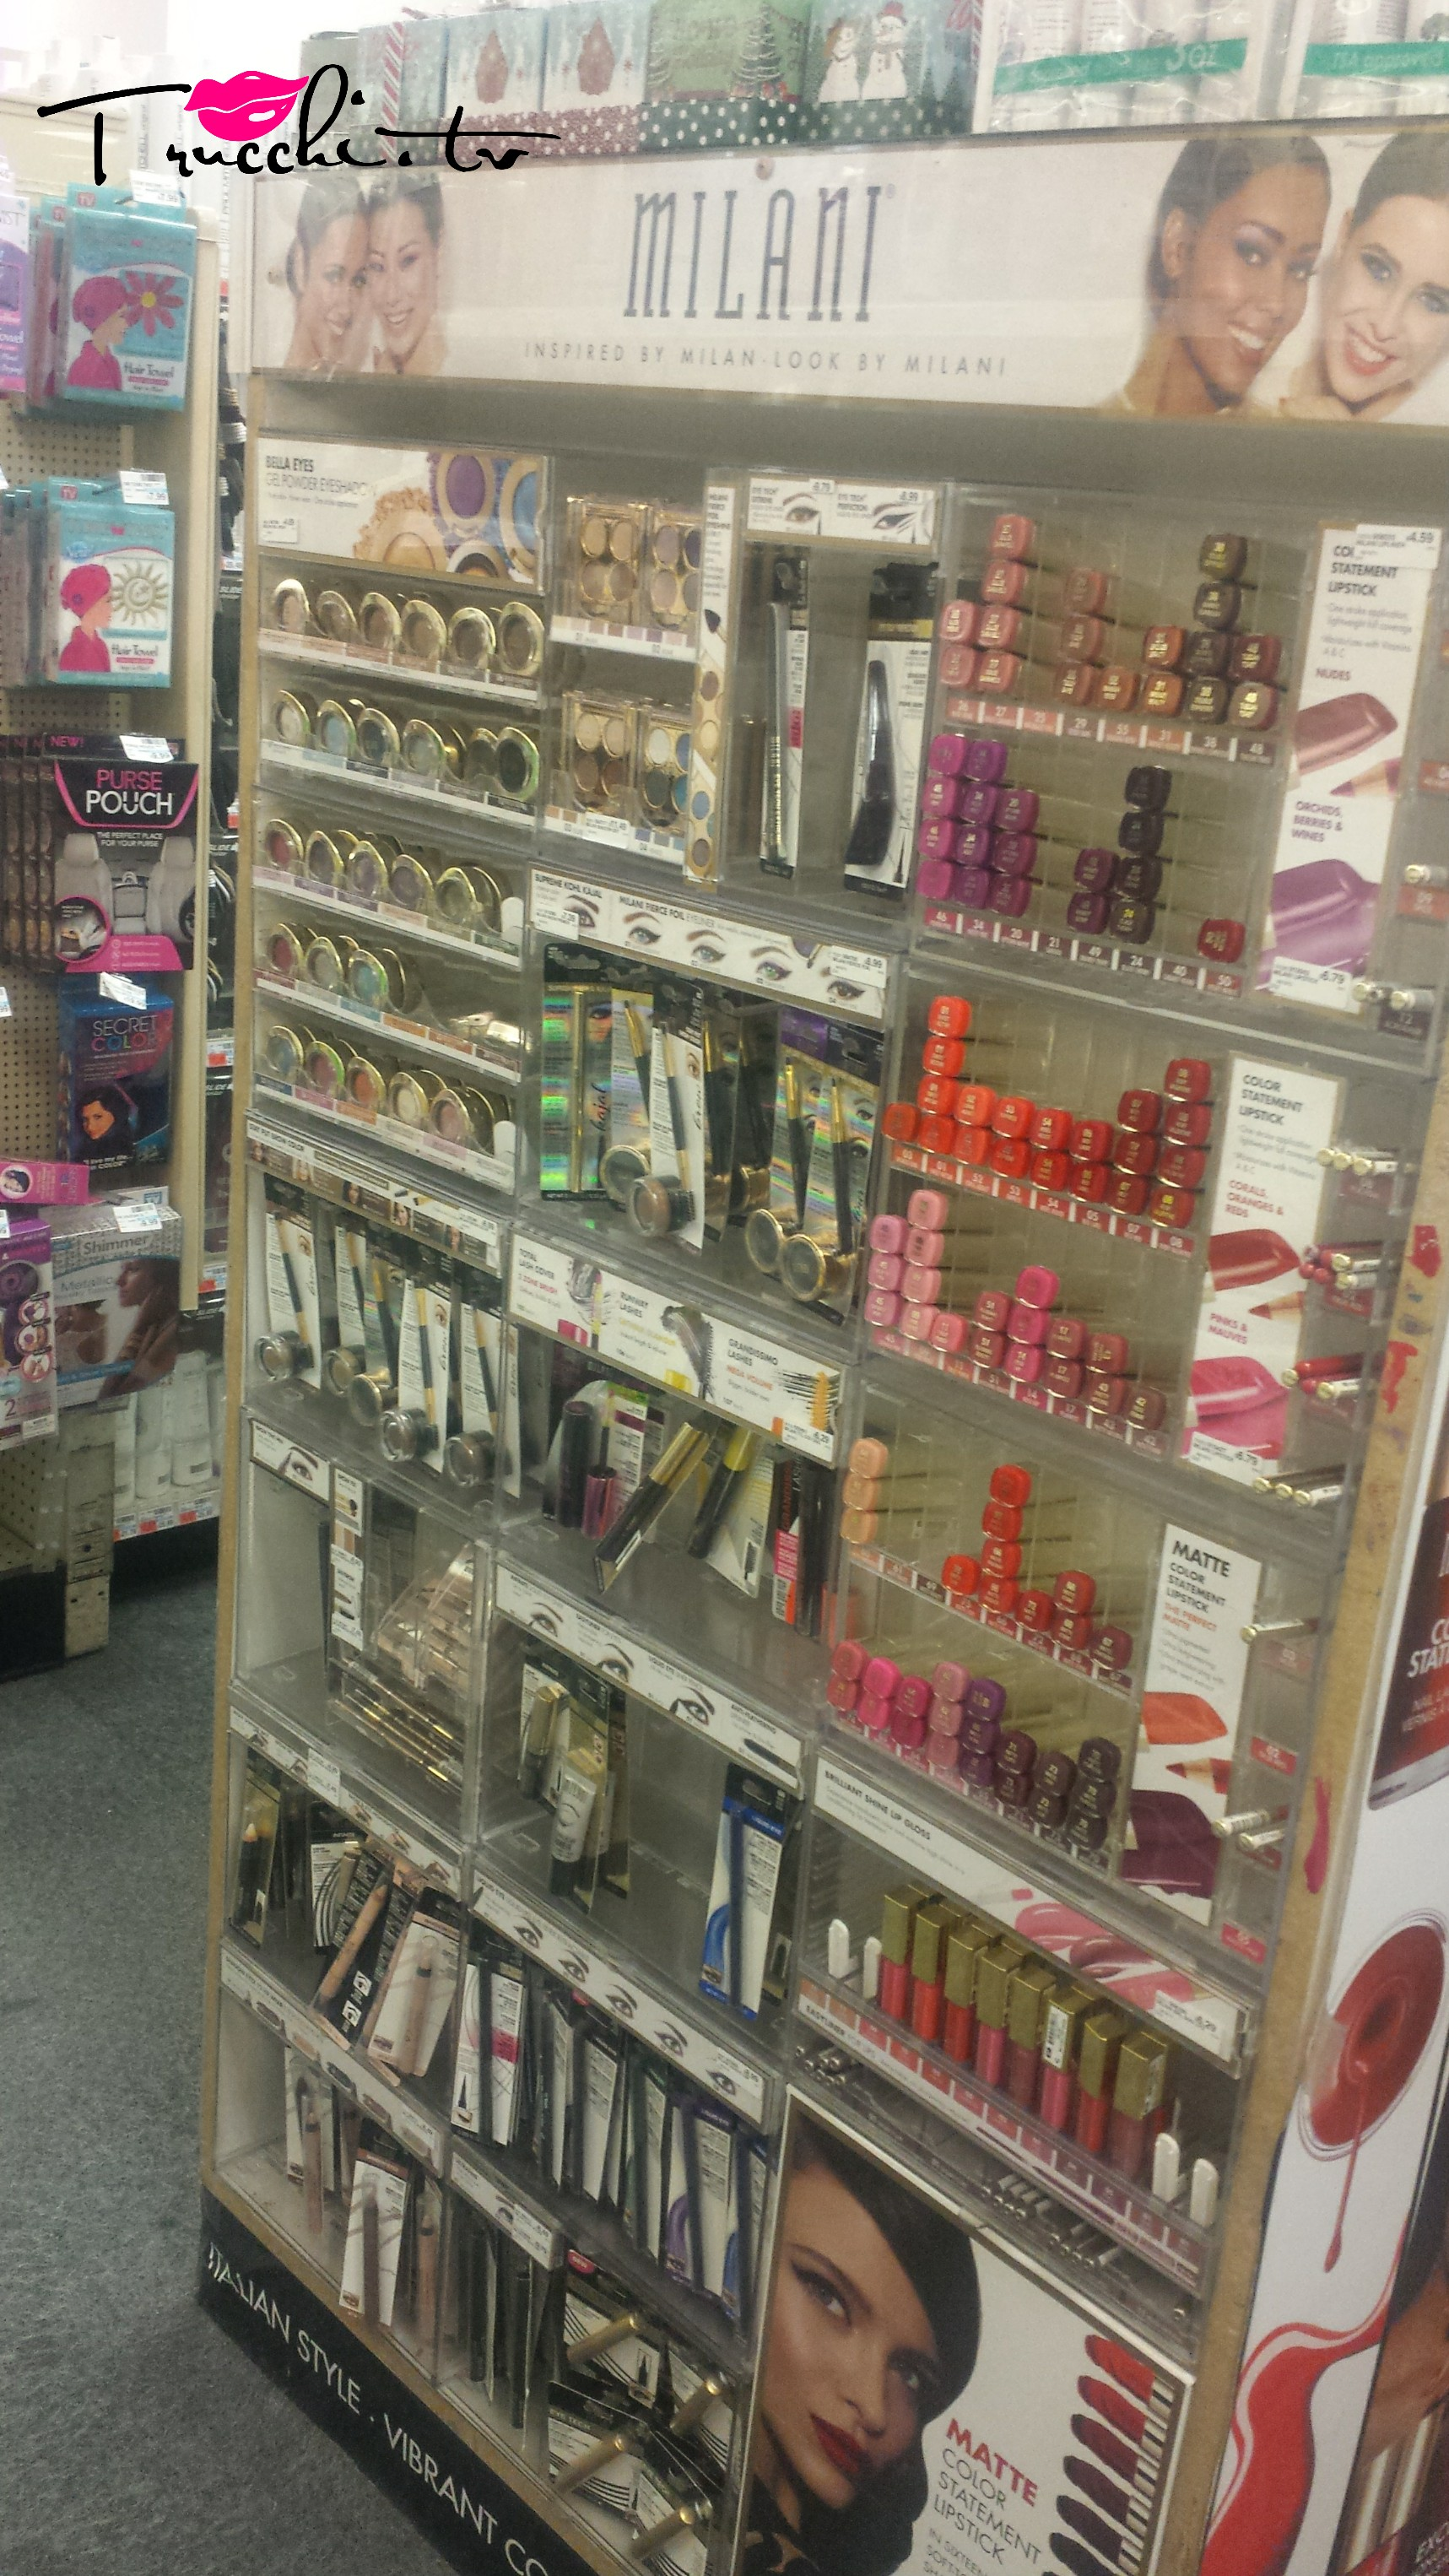 Guida Shopping Makeup New York - CVS Pharmacy Milani